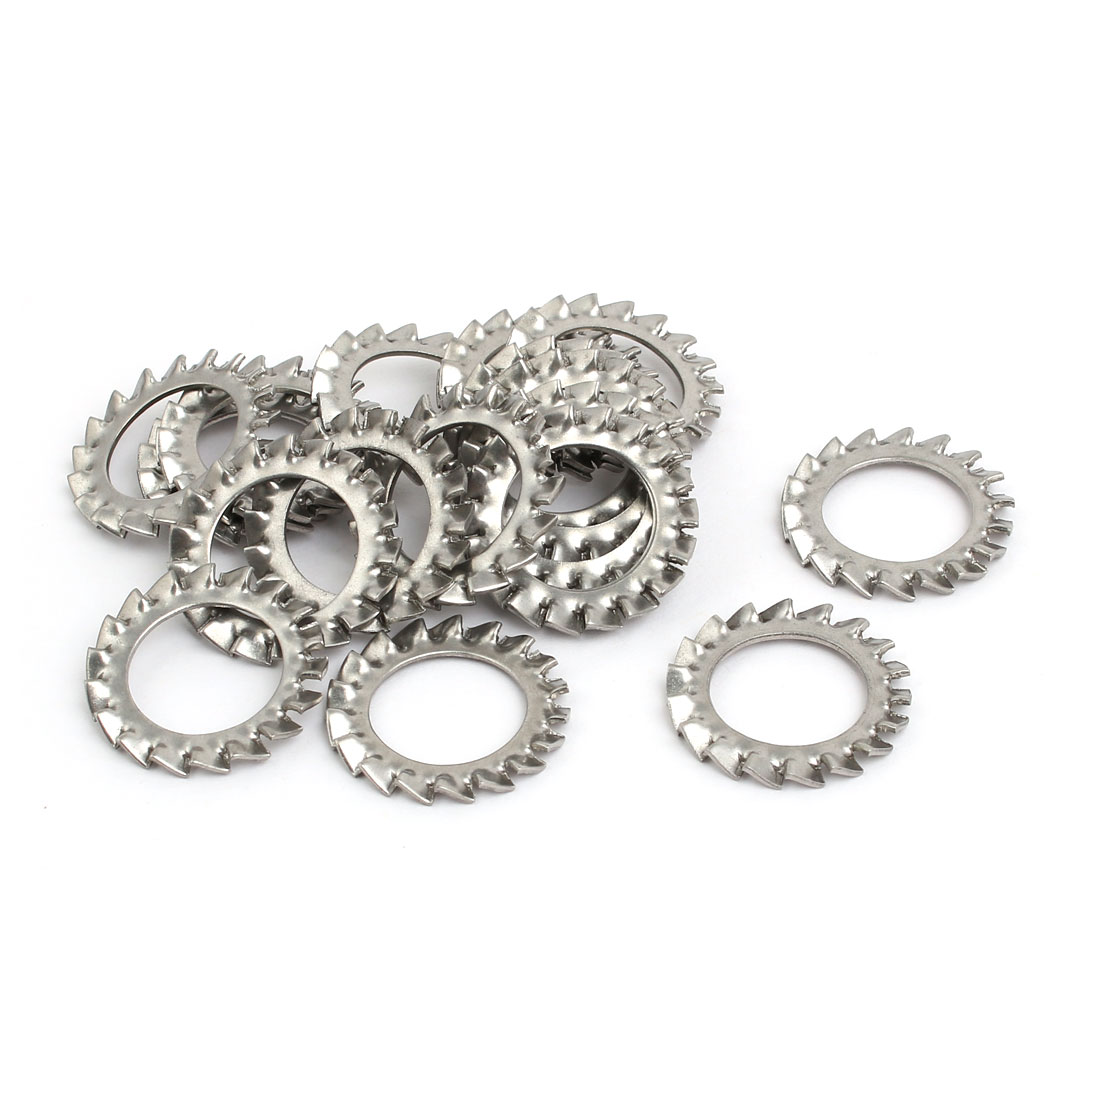 16mm Inner Dia 304 Stainless Steel External Tooth Lock Washer Silver Tone 20pcs